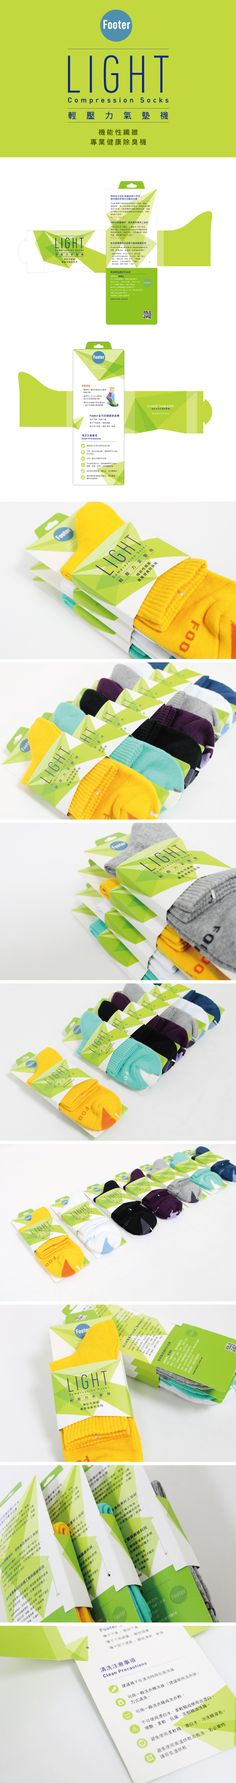 Footer / Fashion & Function Socks / Packaging Design